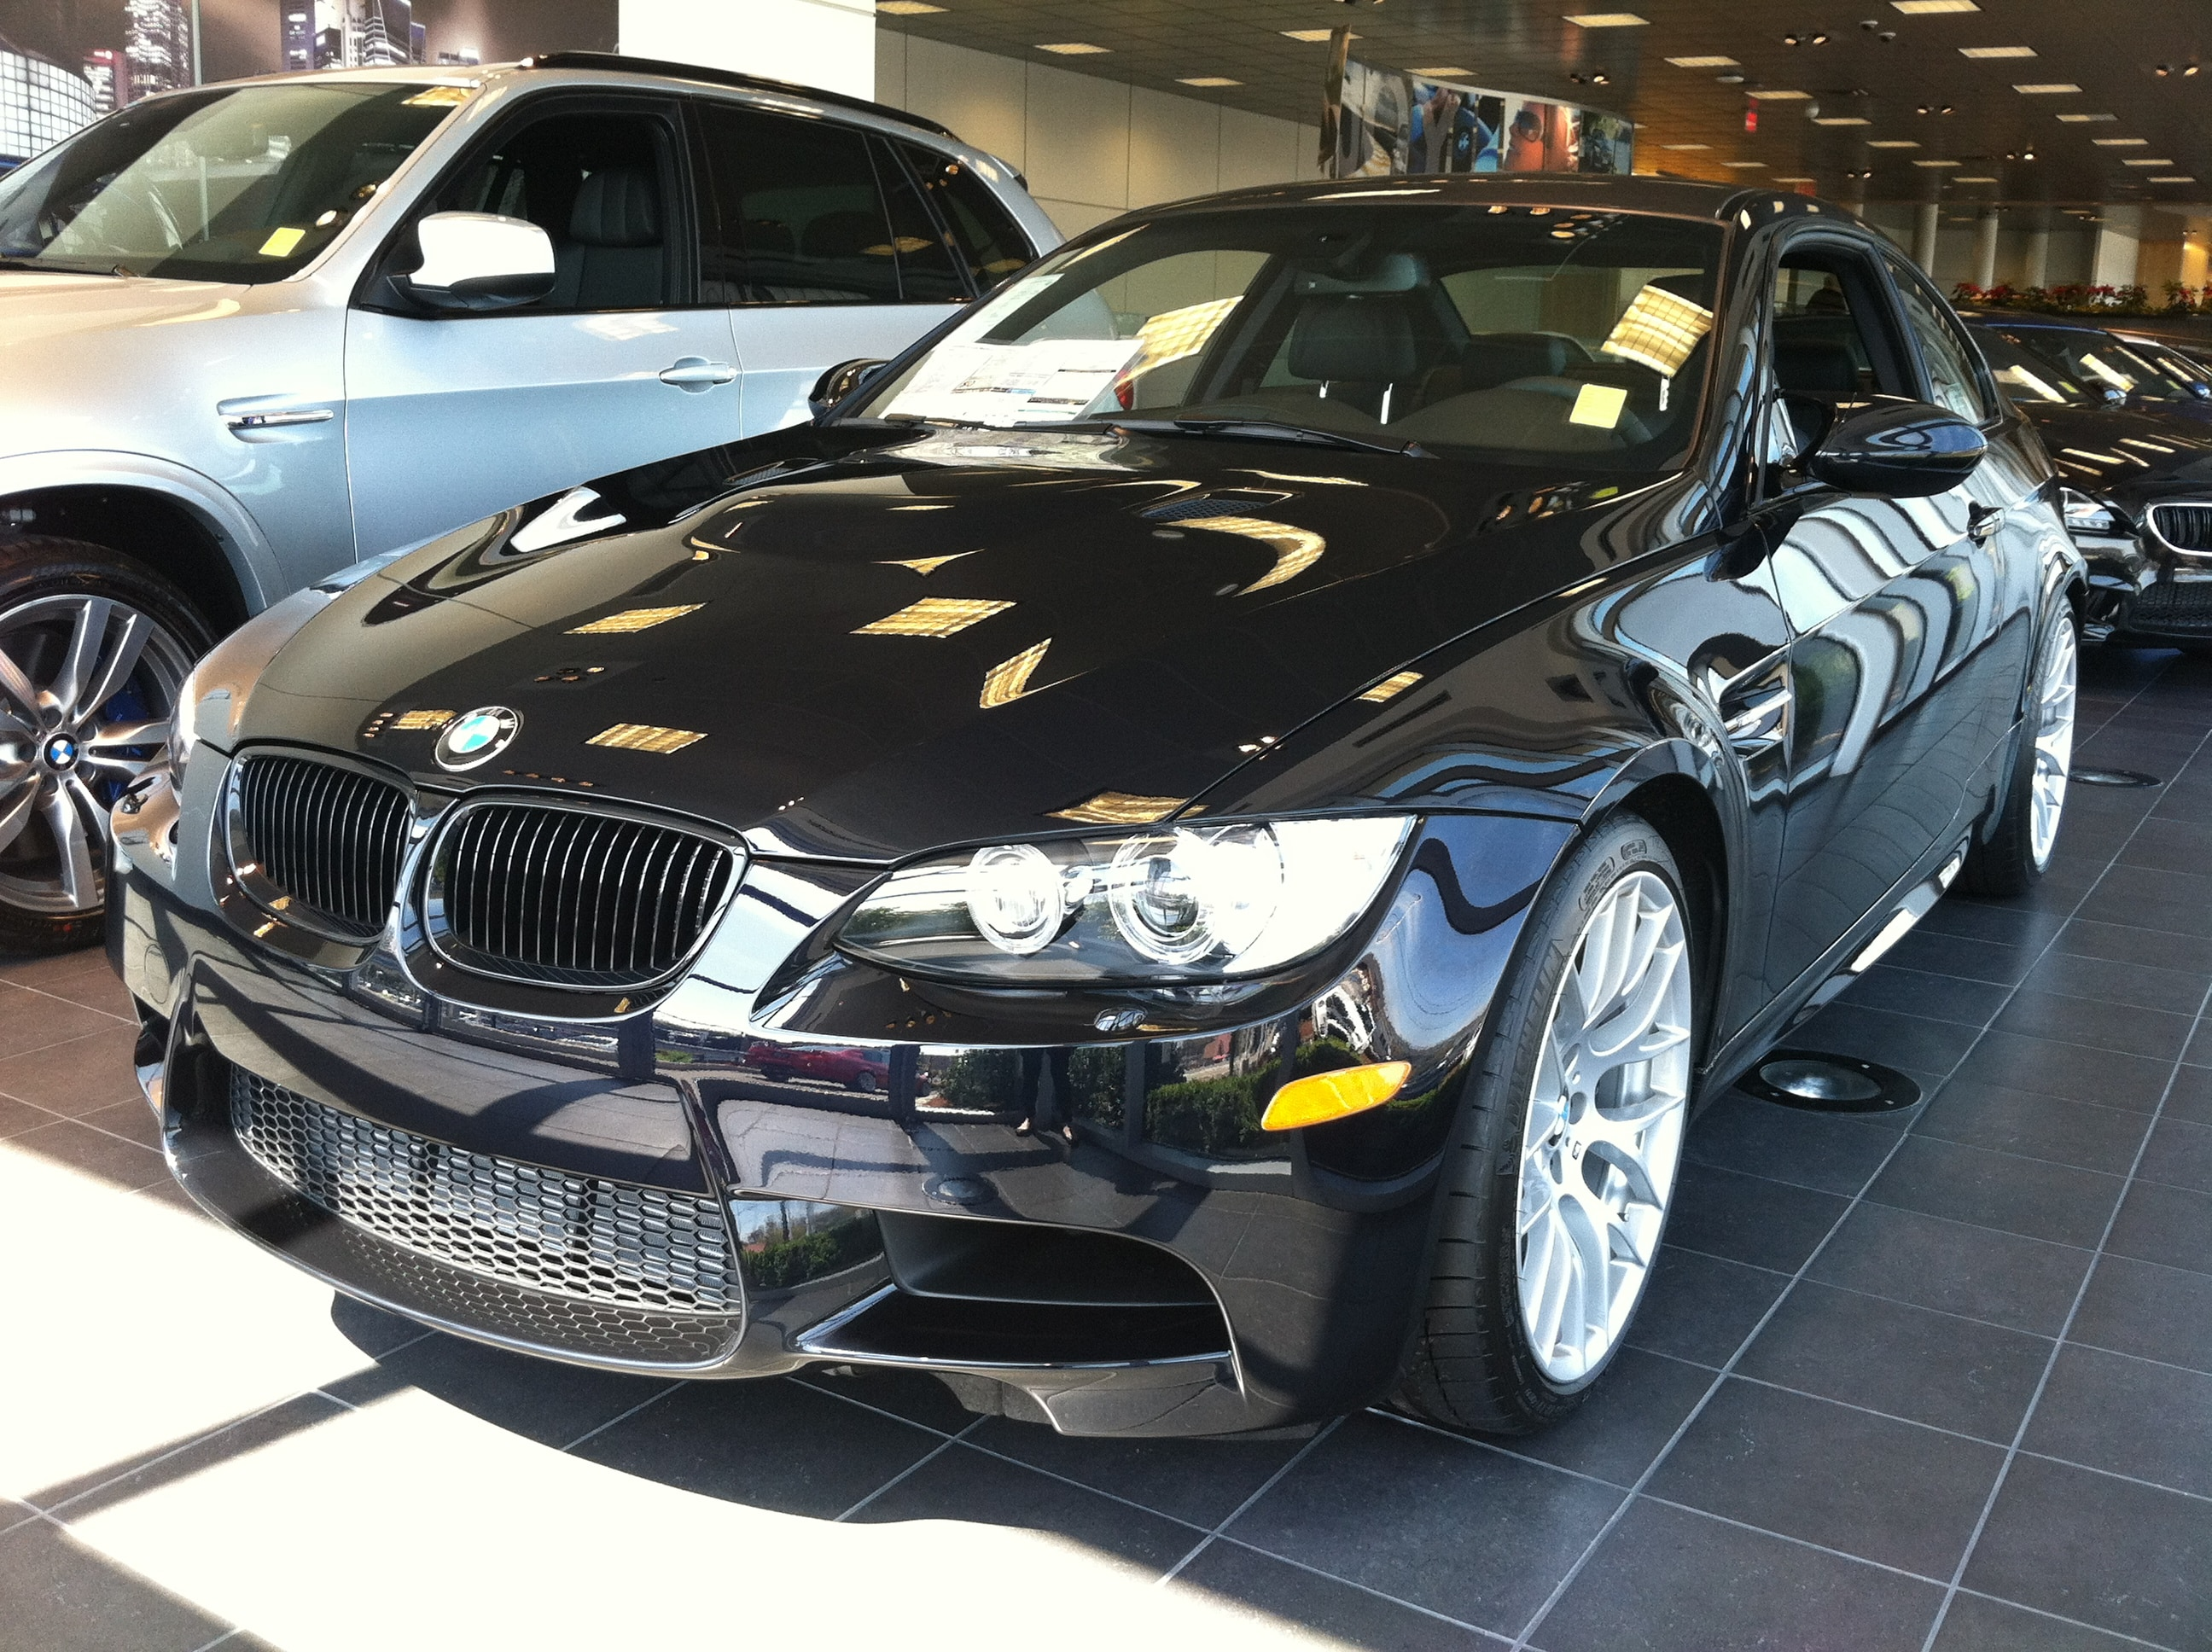 BMW Performance Project Cars for Sale | Upgrades, Mods | BMW